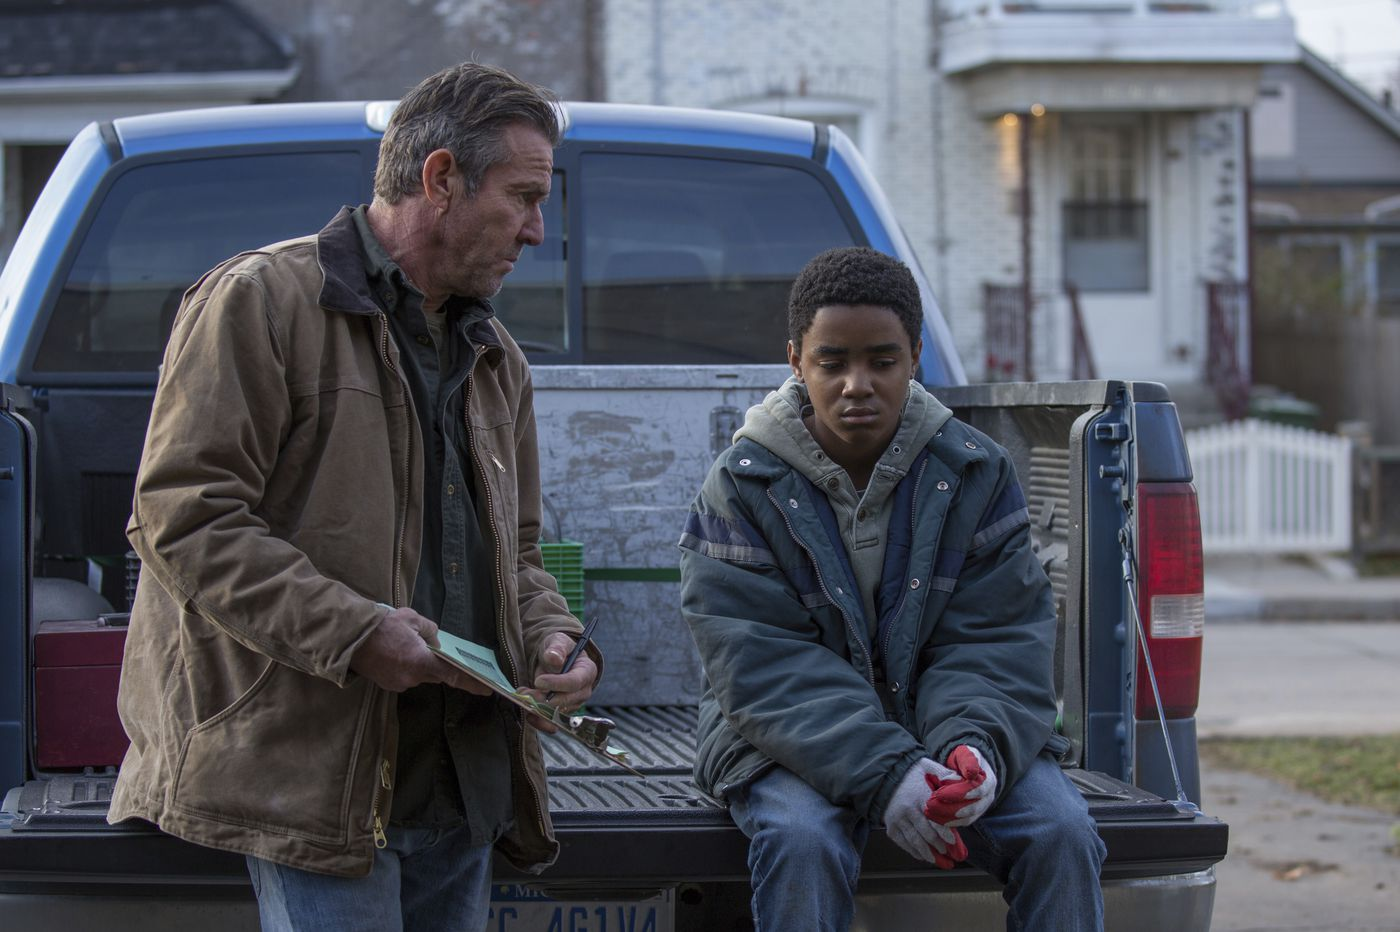 'Kin': This relies too much on '80s tropes